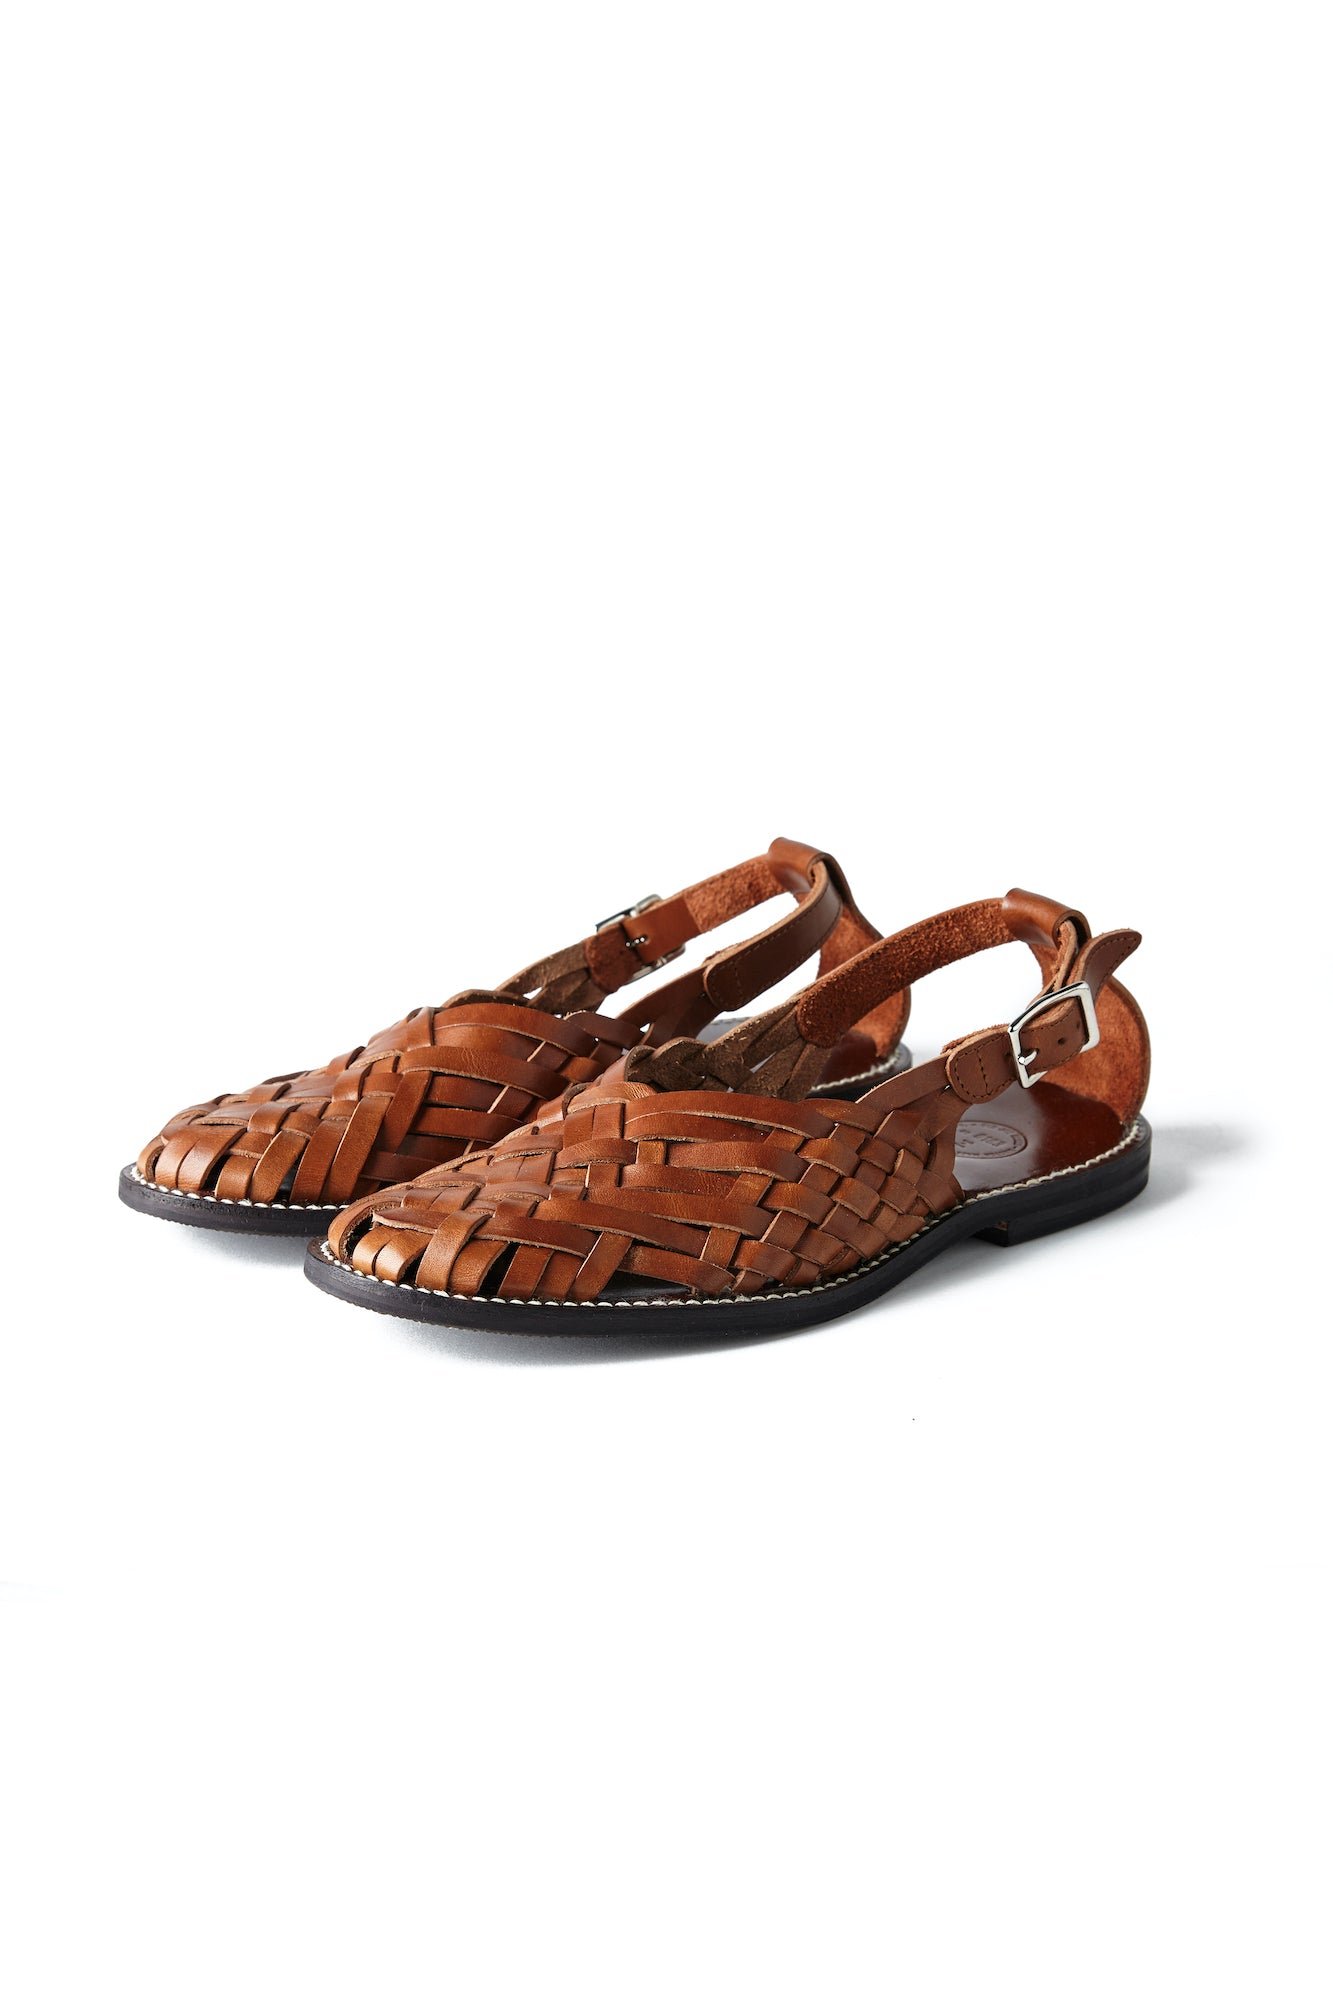 """The Sculptor"" ITALIAN LEATHER HURACHE SANDALS - 201OJ-FW04"